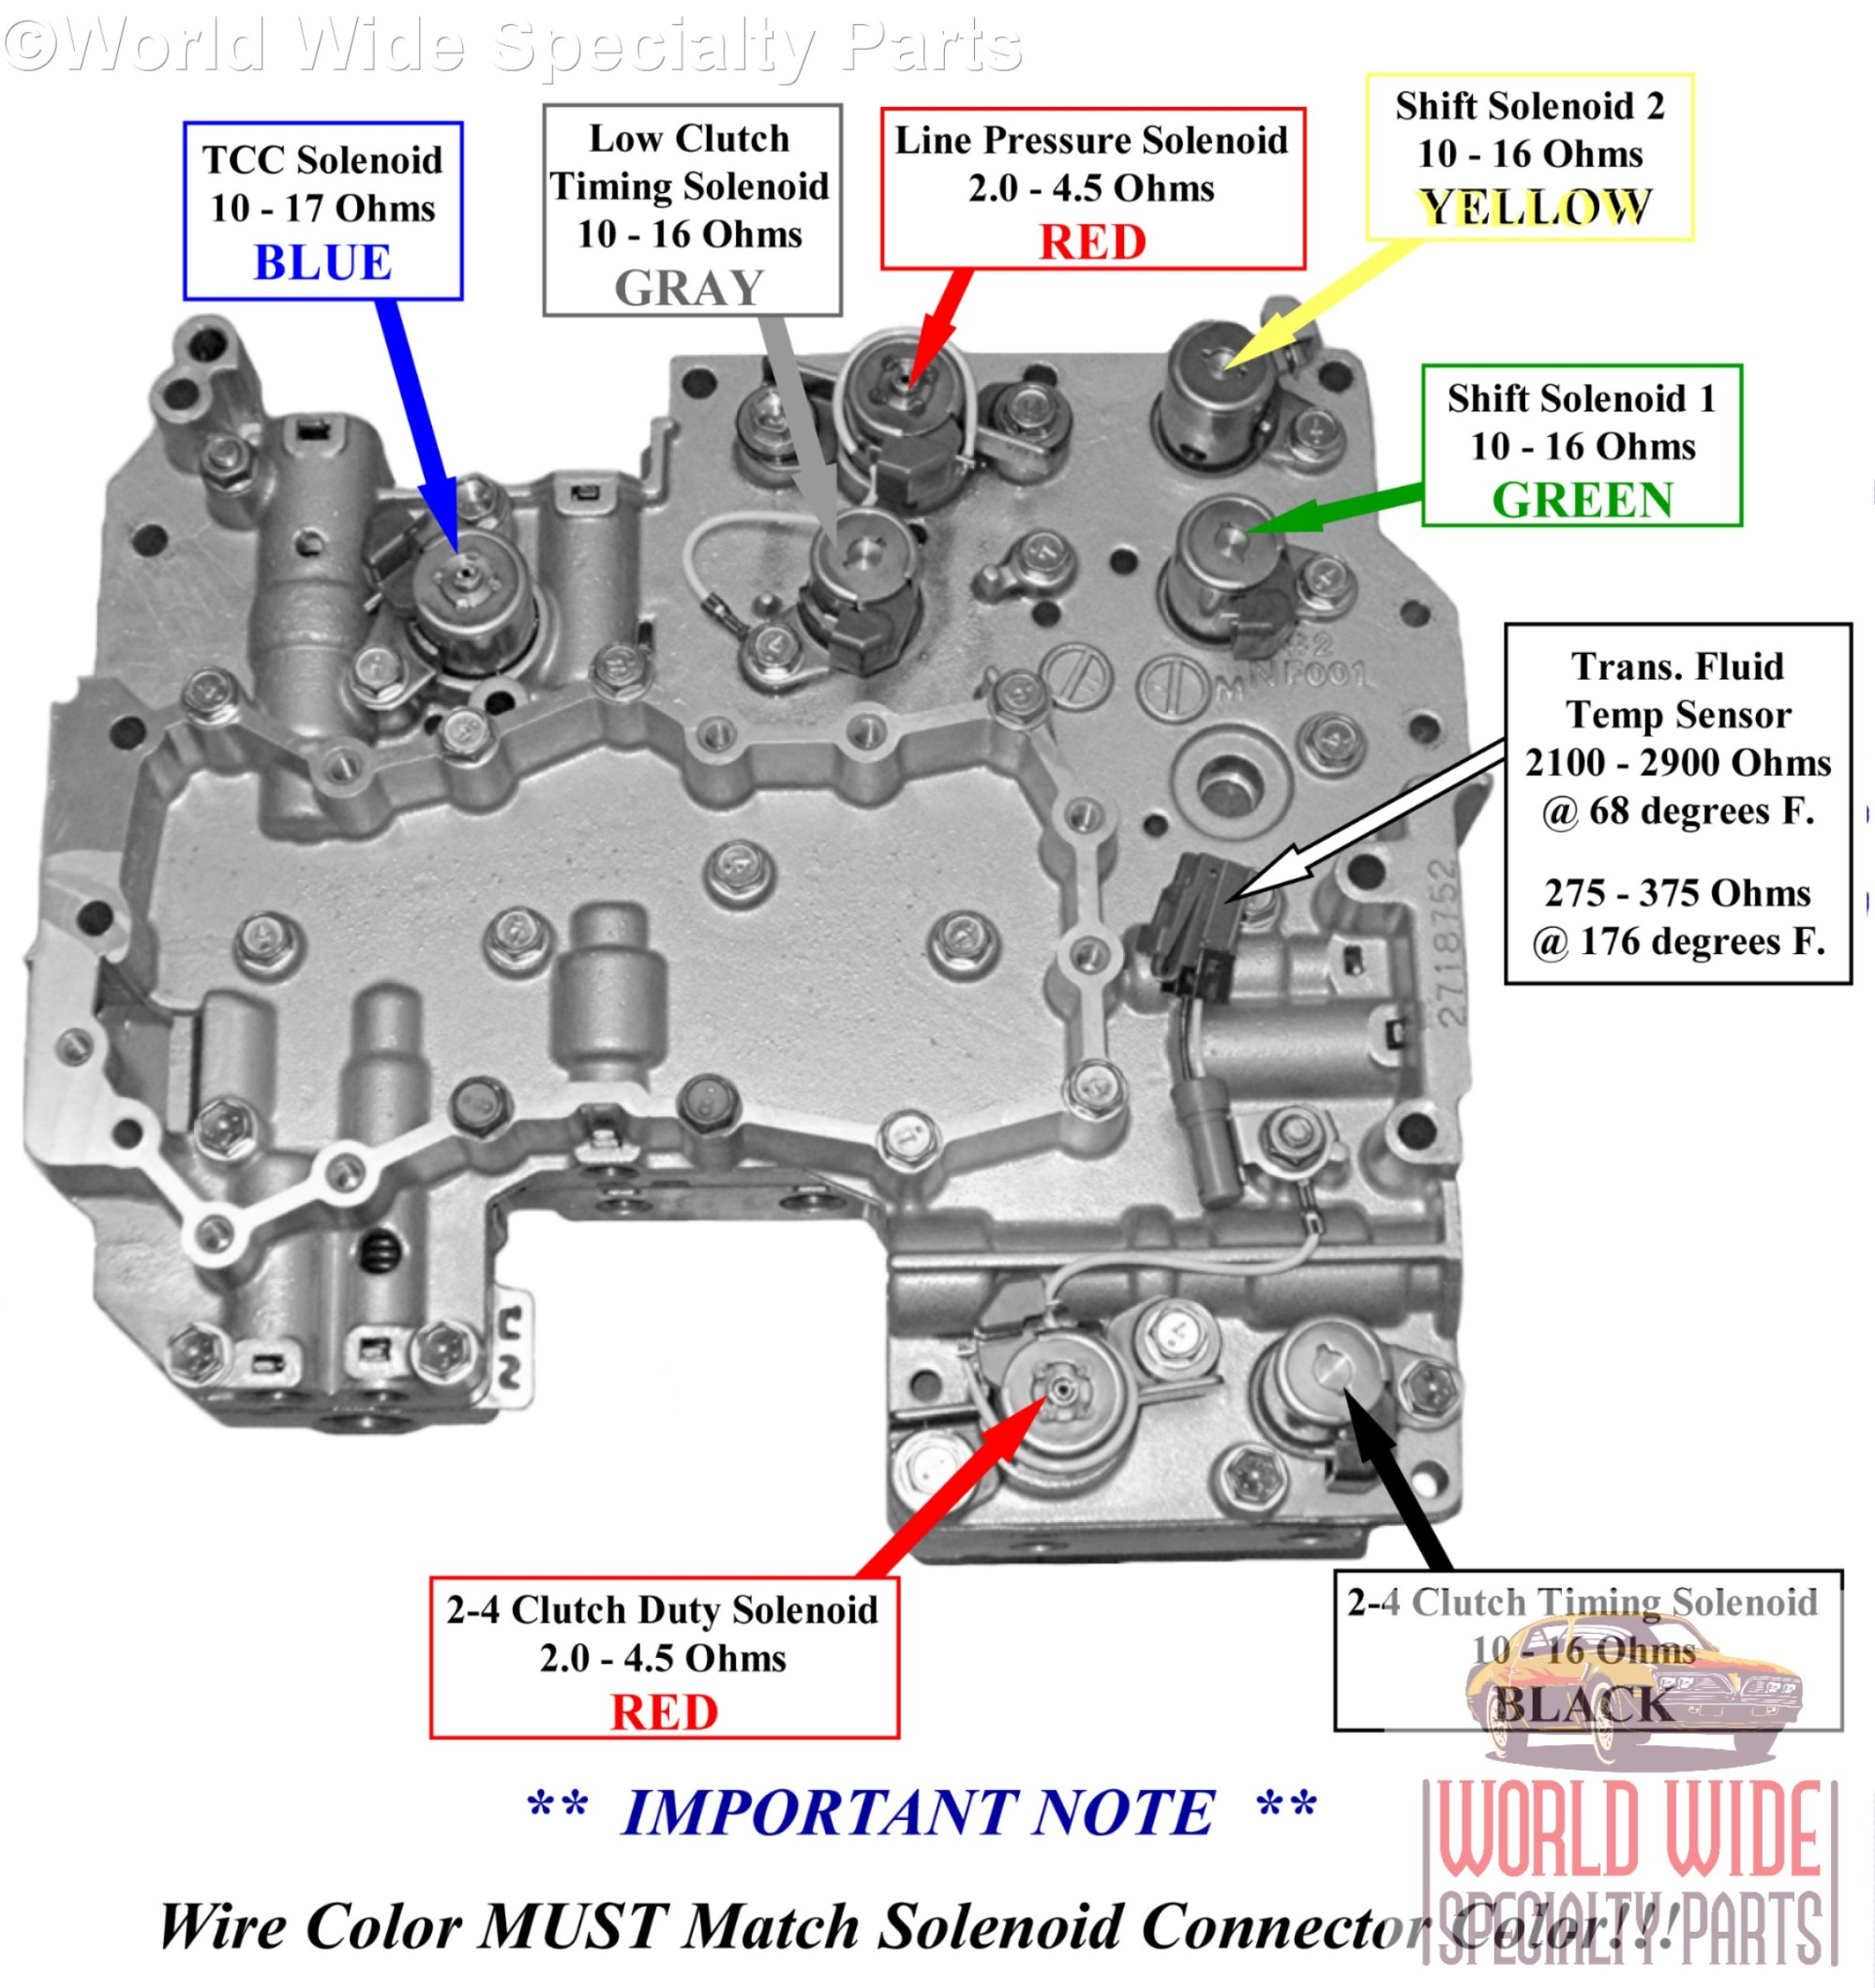 hight resolution of 4eat solenoid id subaru 4eat valve body 2001 2005 lifetime warranty sonnax built automatic